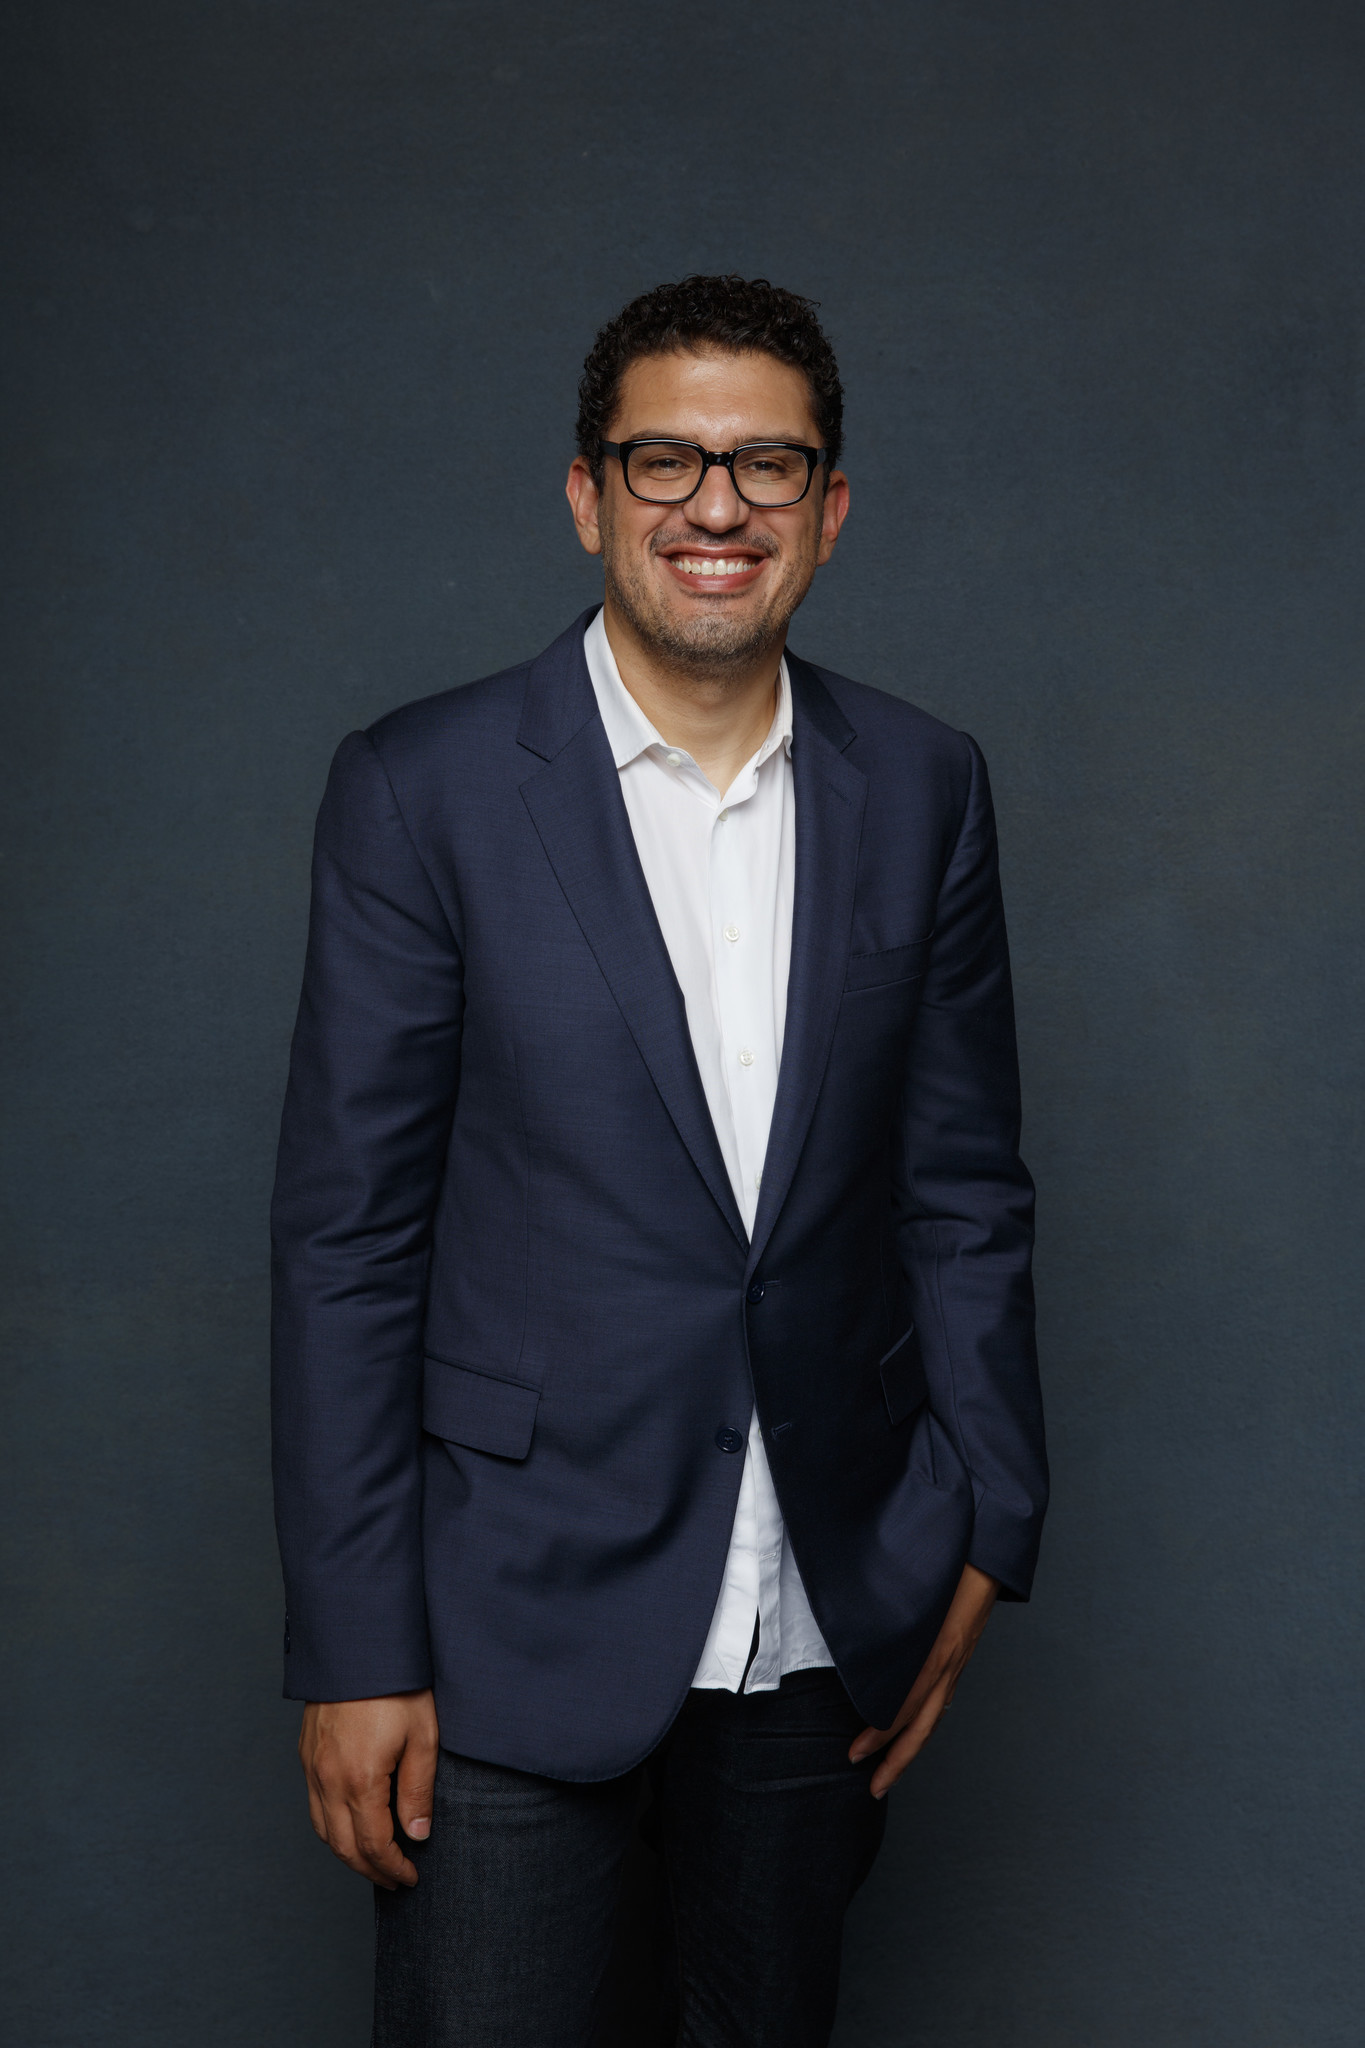 """SAN DIEGO, CALIF. -- JULY 20, 2018-- Sam Esmail from the television show """"Amazon Showrunners,"""" phot"""